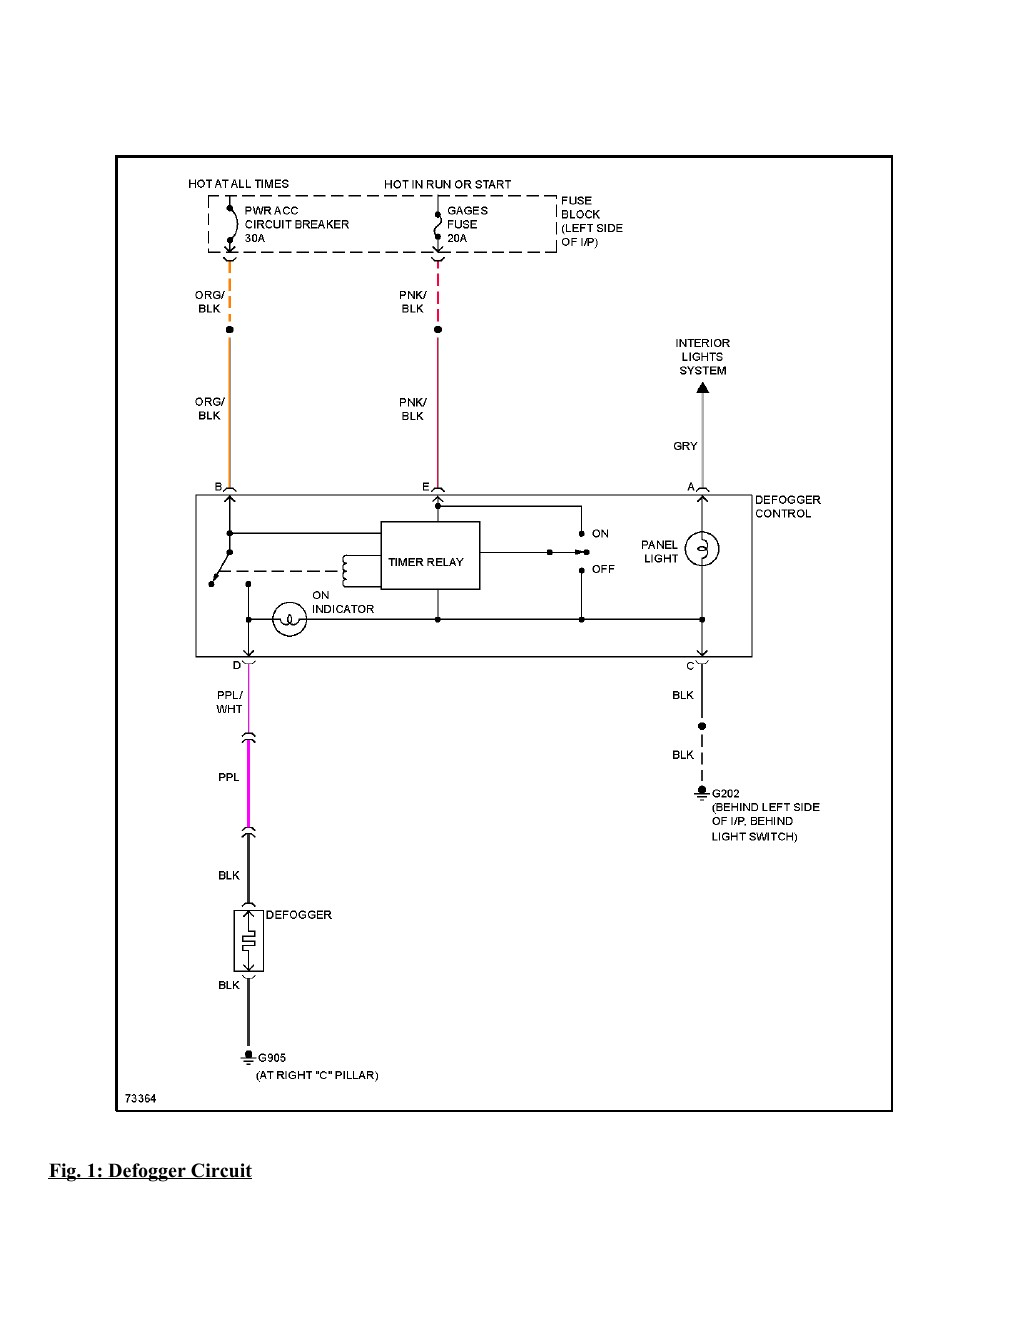 small resolution of 1995 chevrolet monte carlo ss complete wiring diagram part 1999 monte carlo wiring diagram 1999 monte